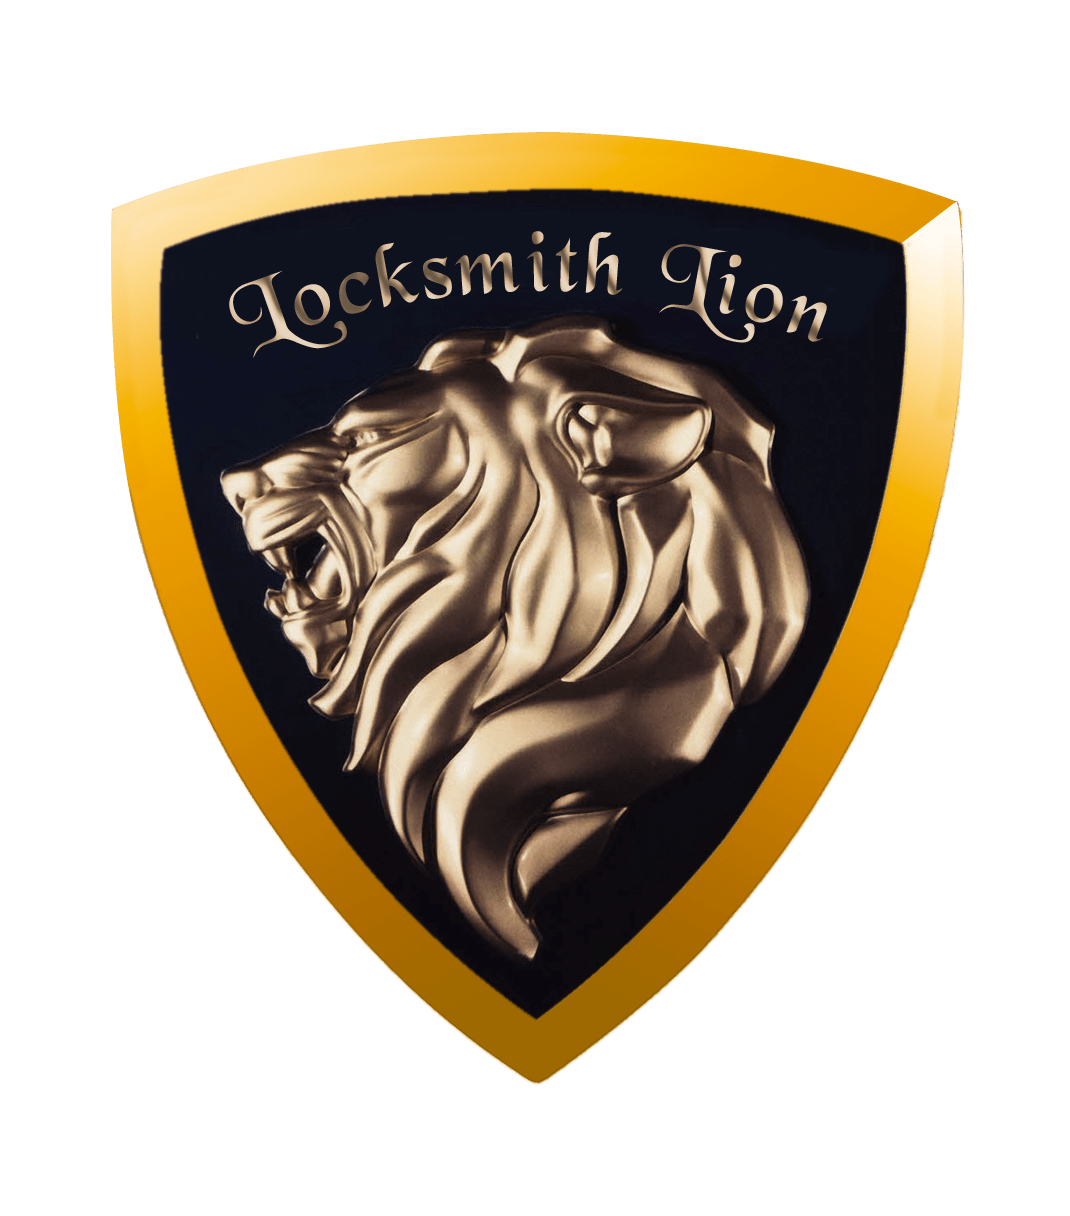 cary Locksmith Lion - Logo 24 hour cary nc Locksmith-min copy